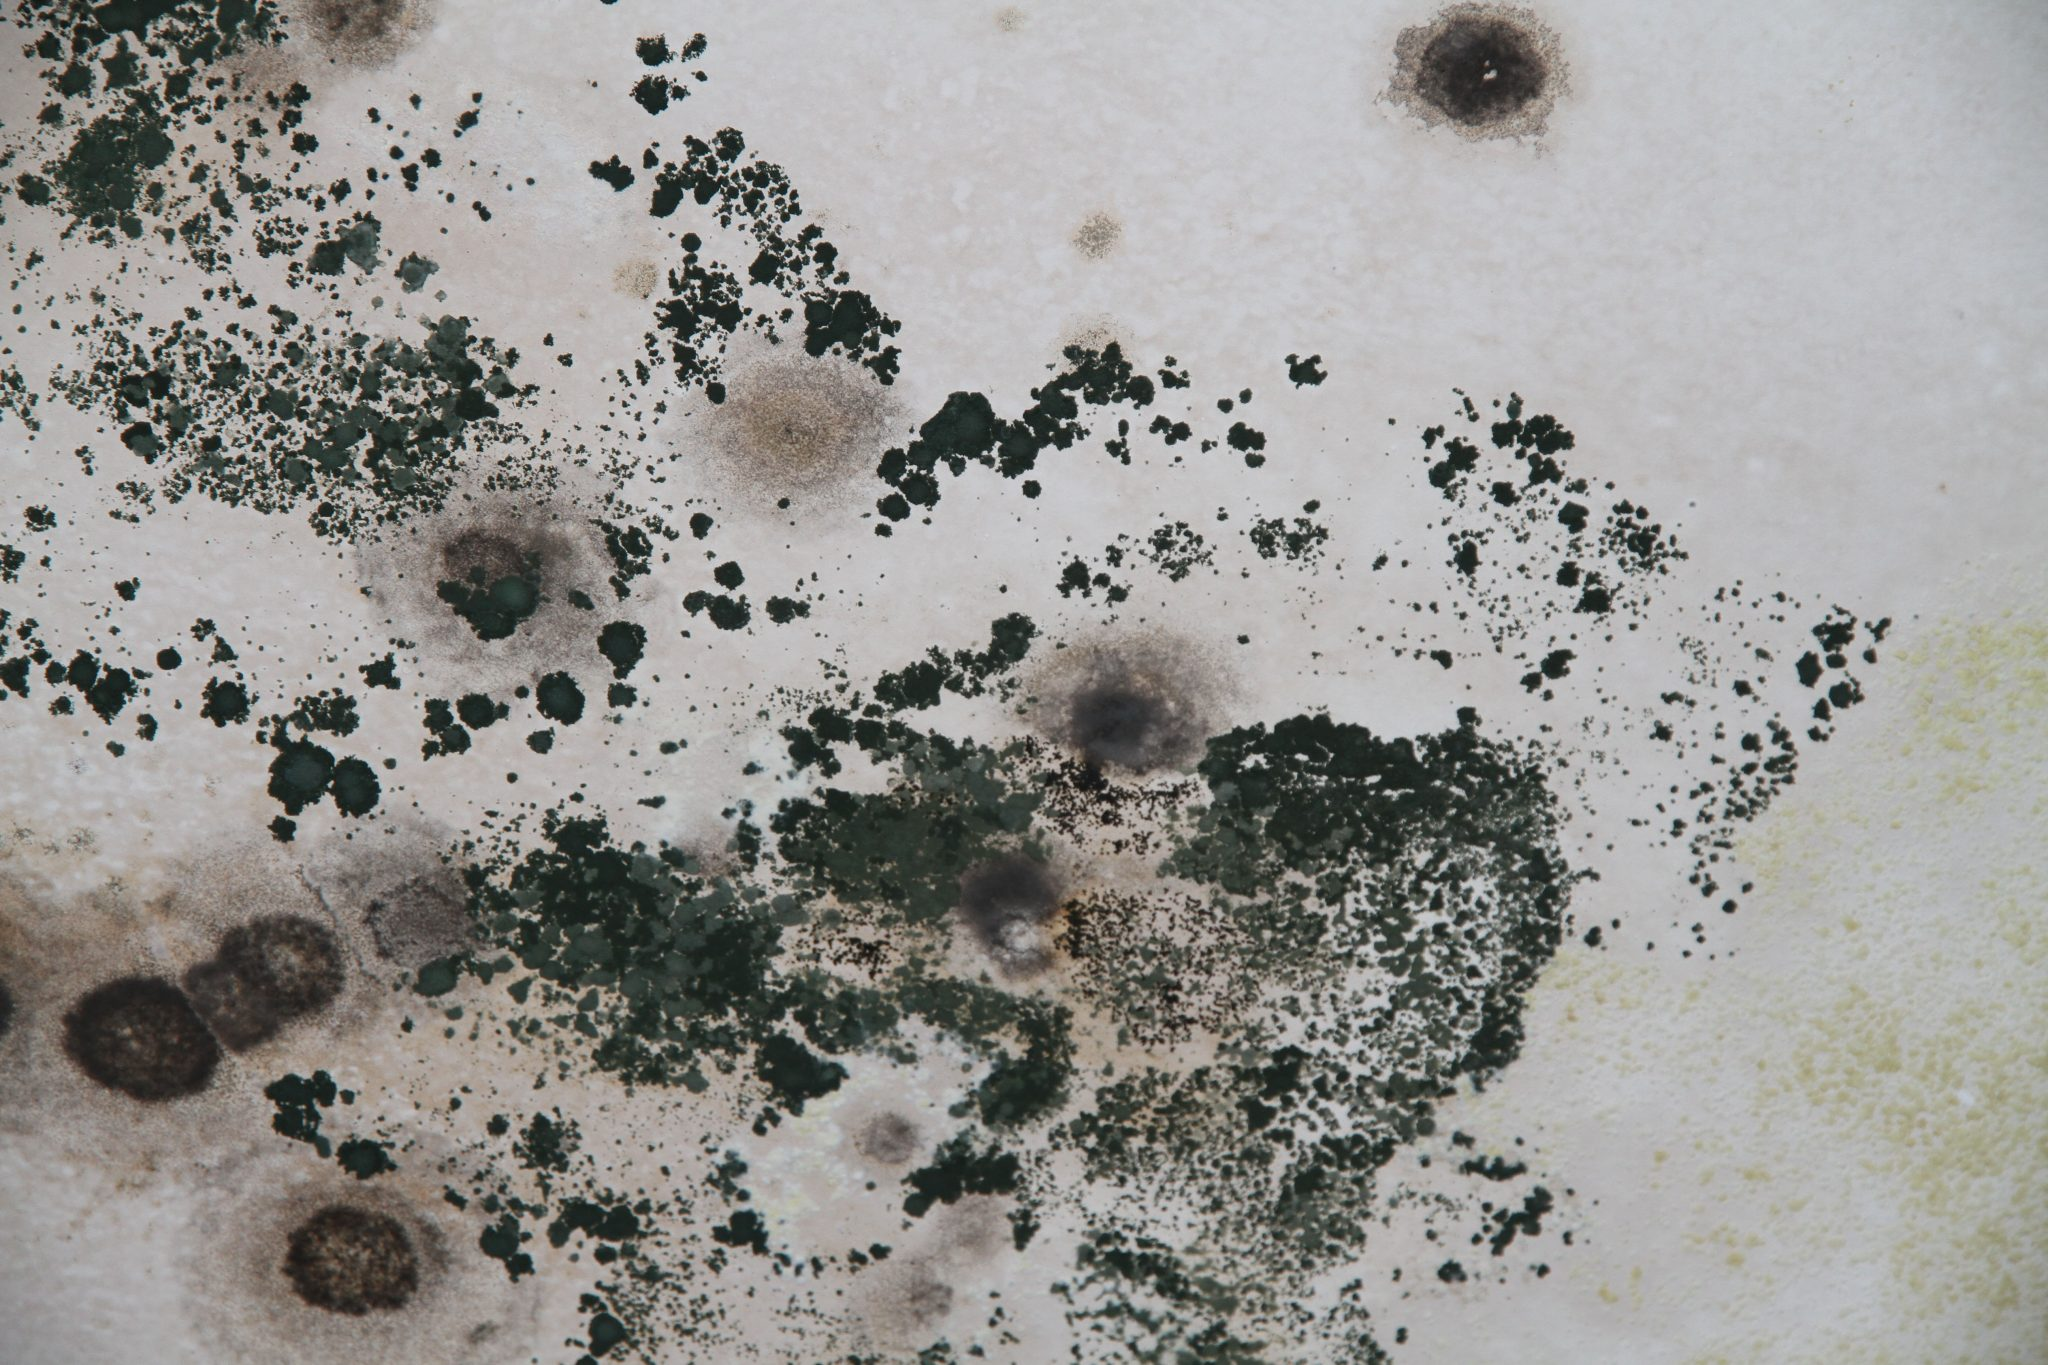 Toxic Black Mold 101